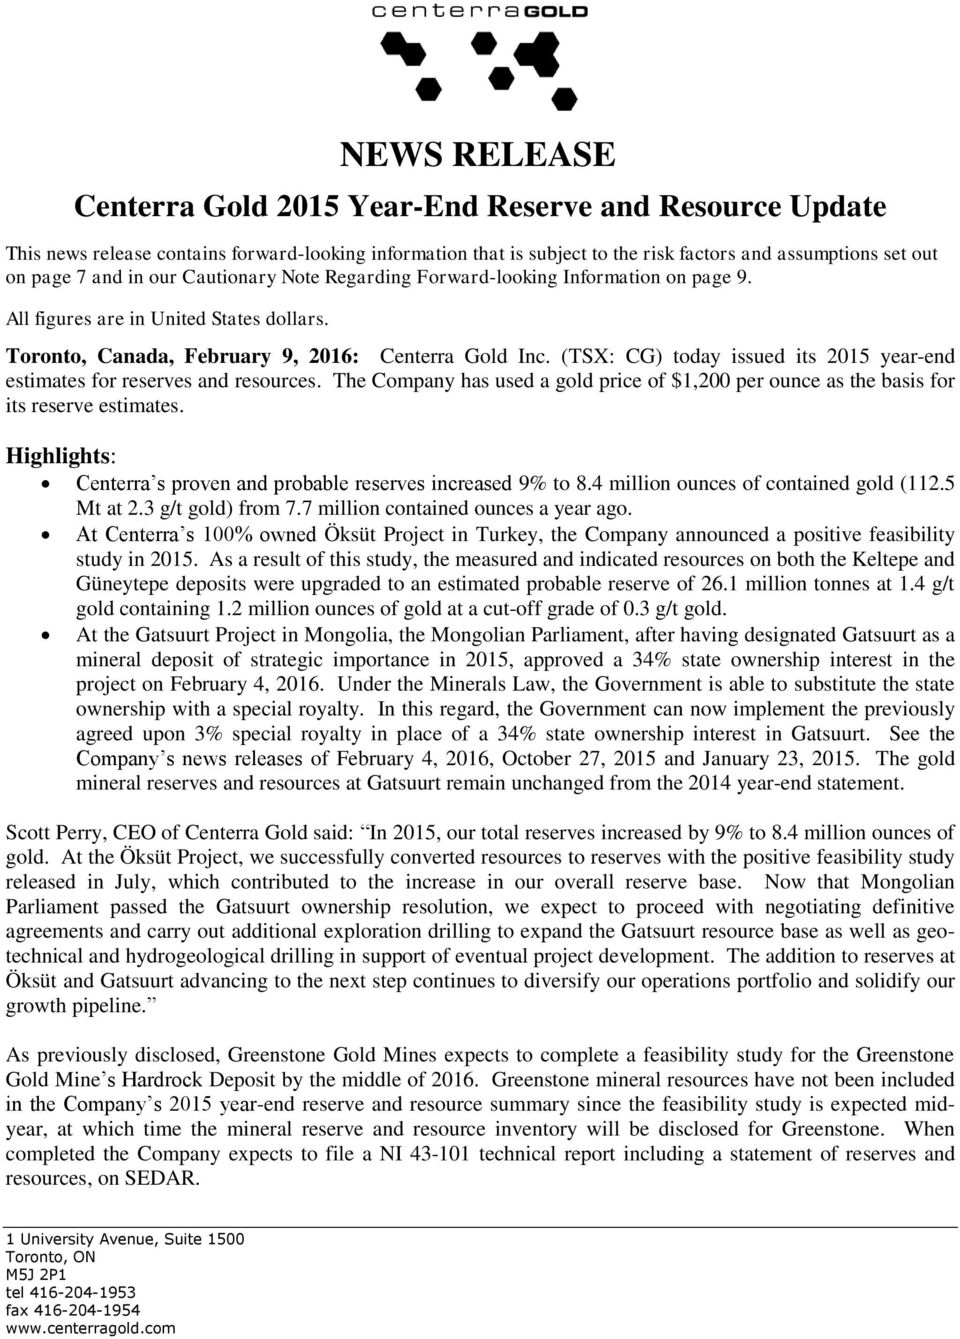 (TSX: CG) today issued its 2015 year-end estimates for reserves and resources. The Company has used a gold price of $1,200 per ounce as the basis for its reserve estimates.